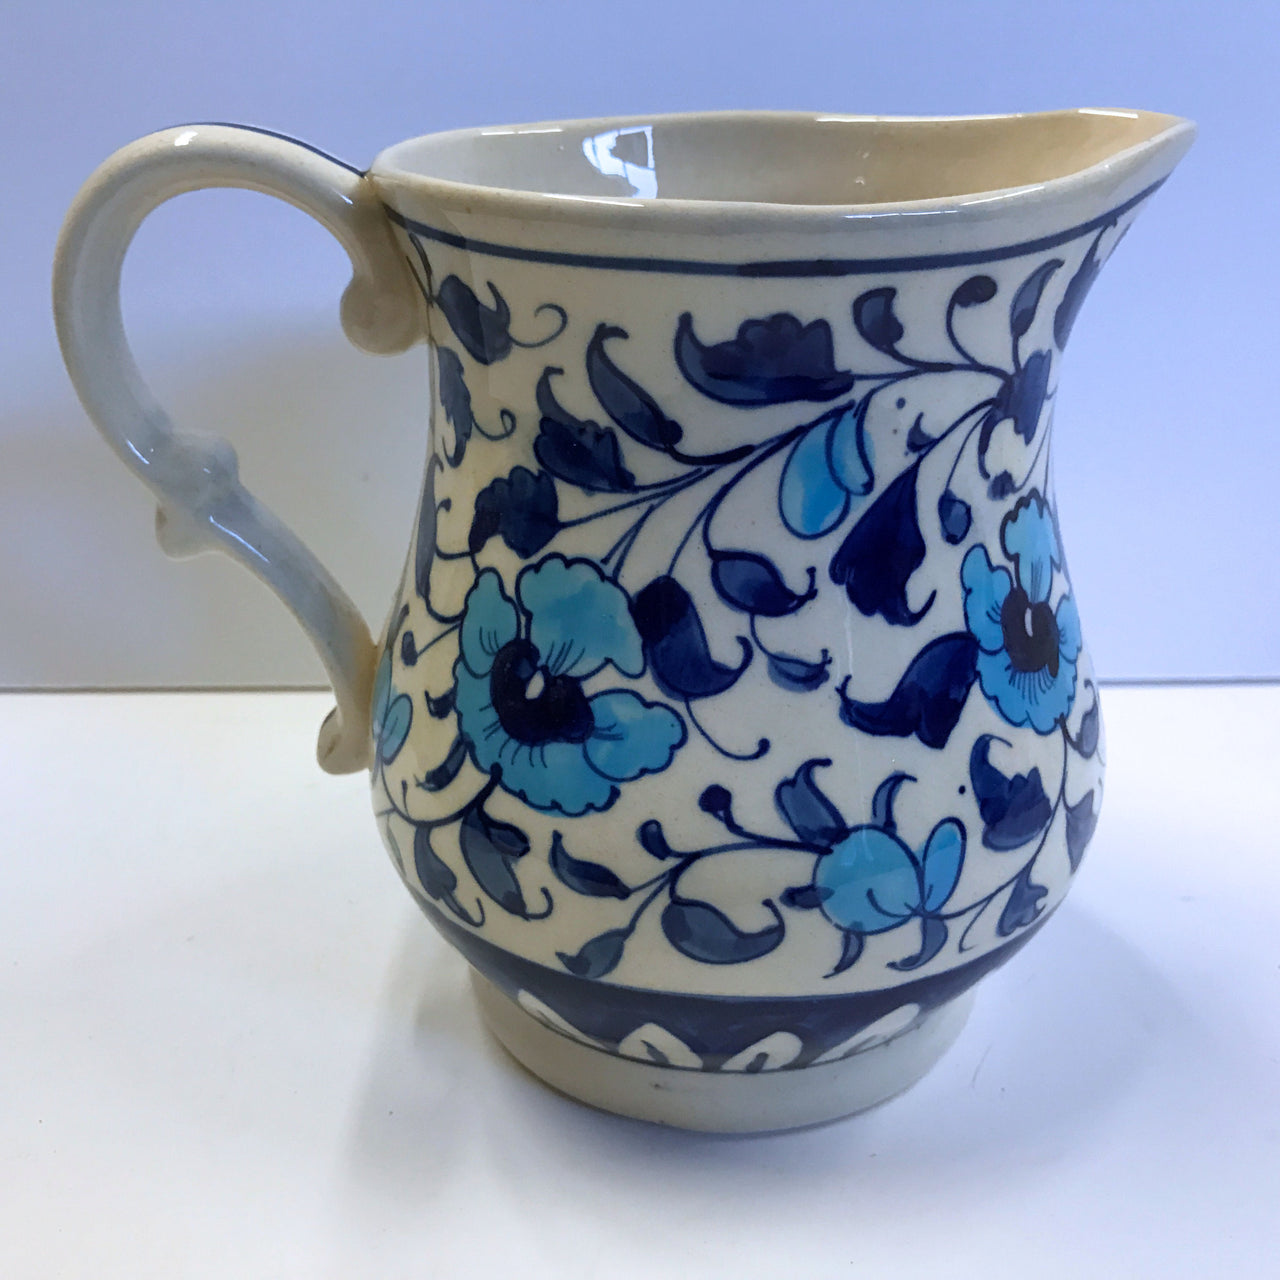 Multani Hand Painted Pitcher Vase Blue and White Flowers Floral Design 5-5/8""